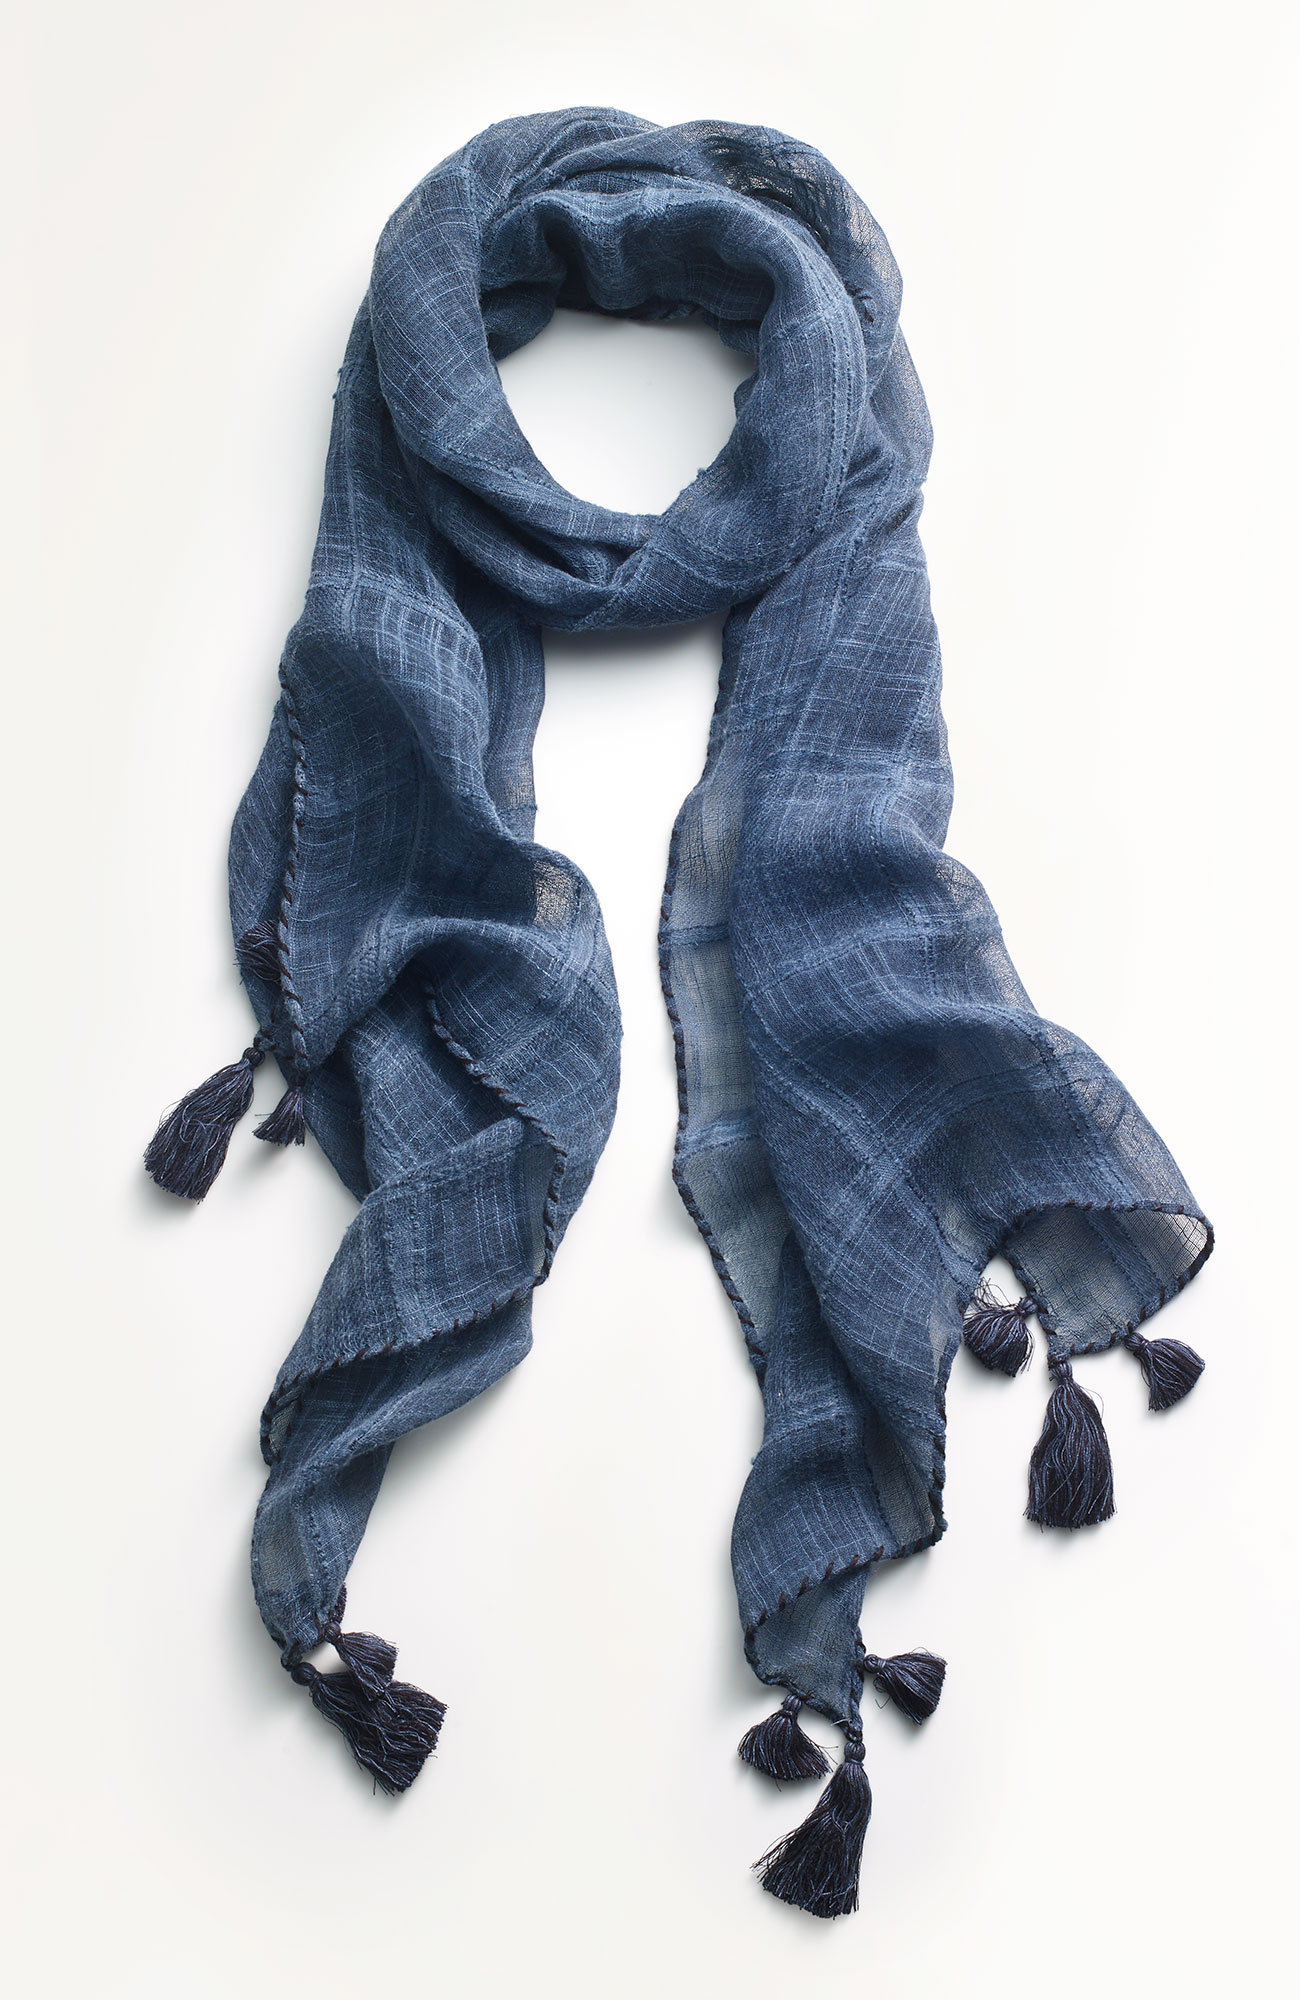 Pure Jill textured scarf